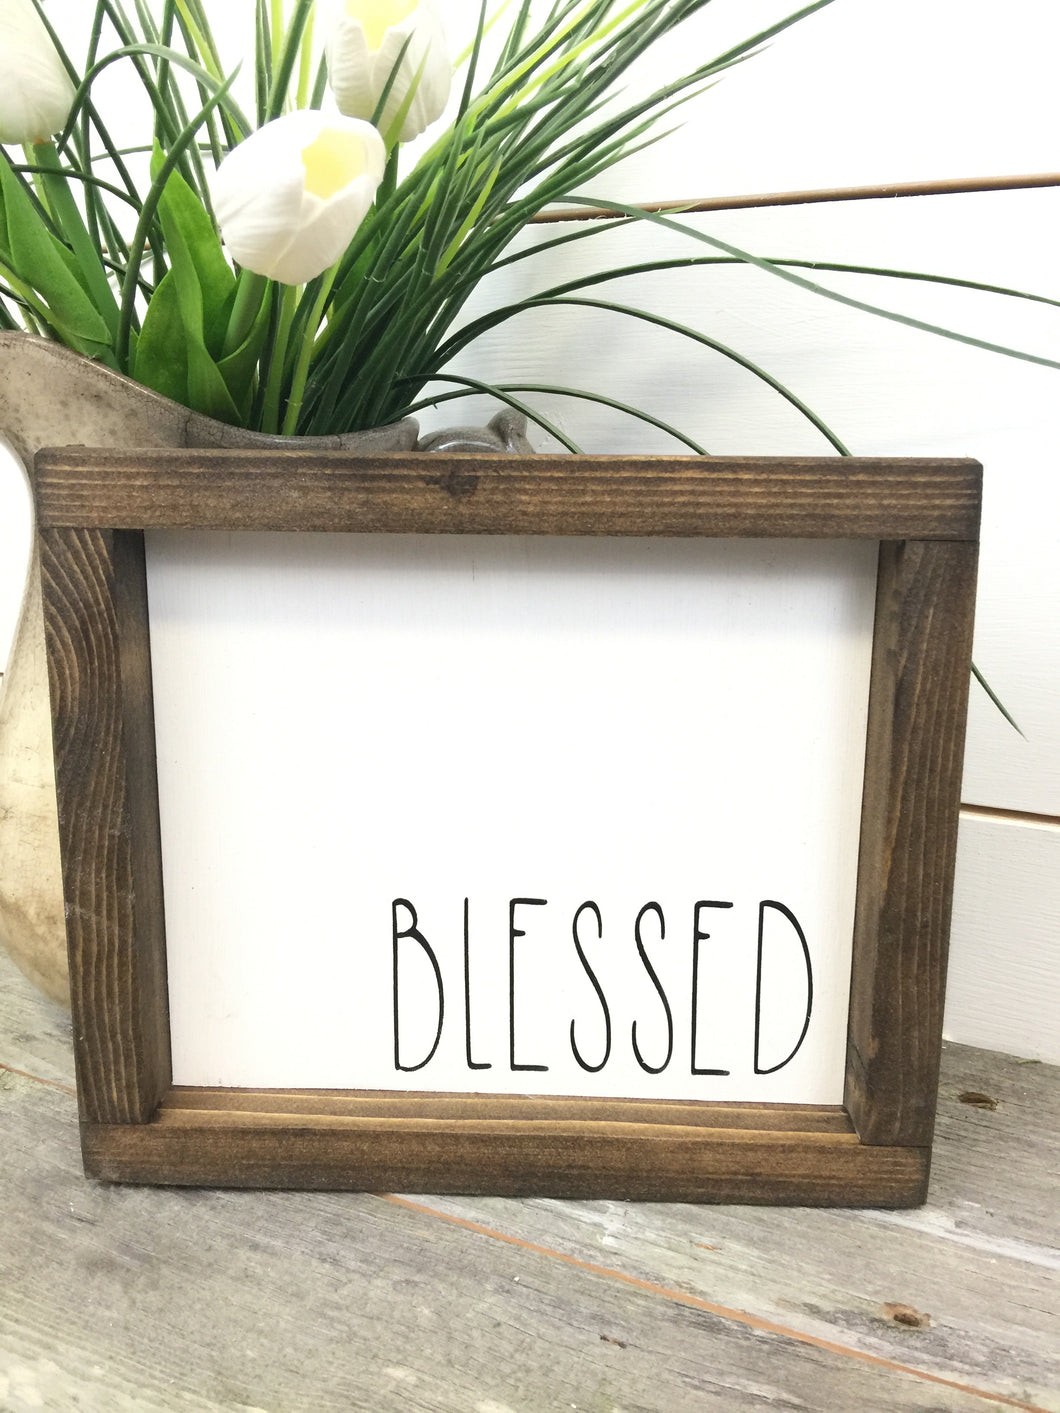 Blessed White Framed Wood Sign